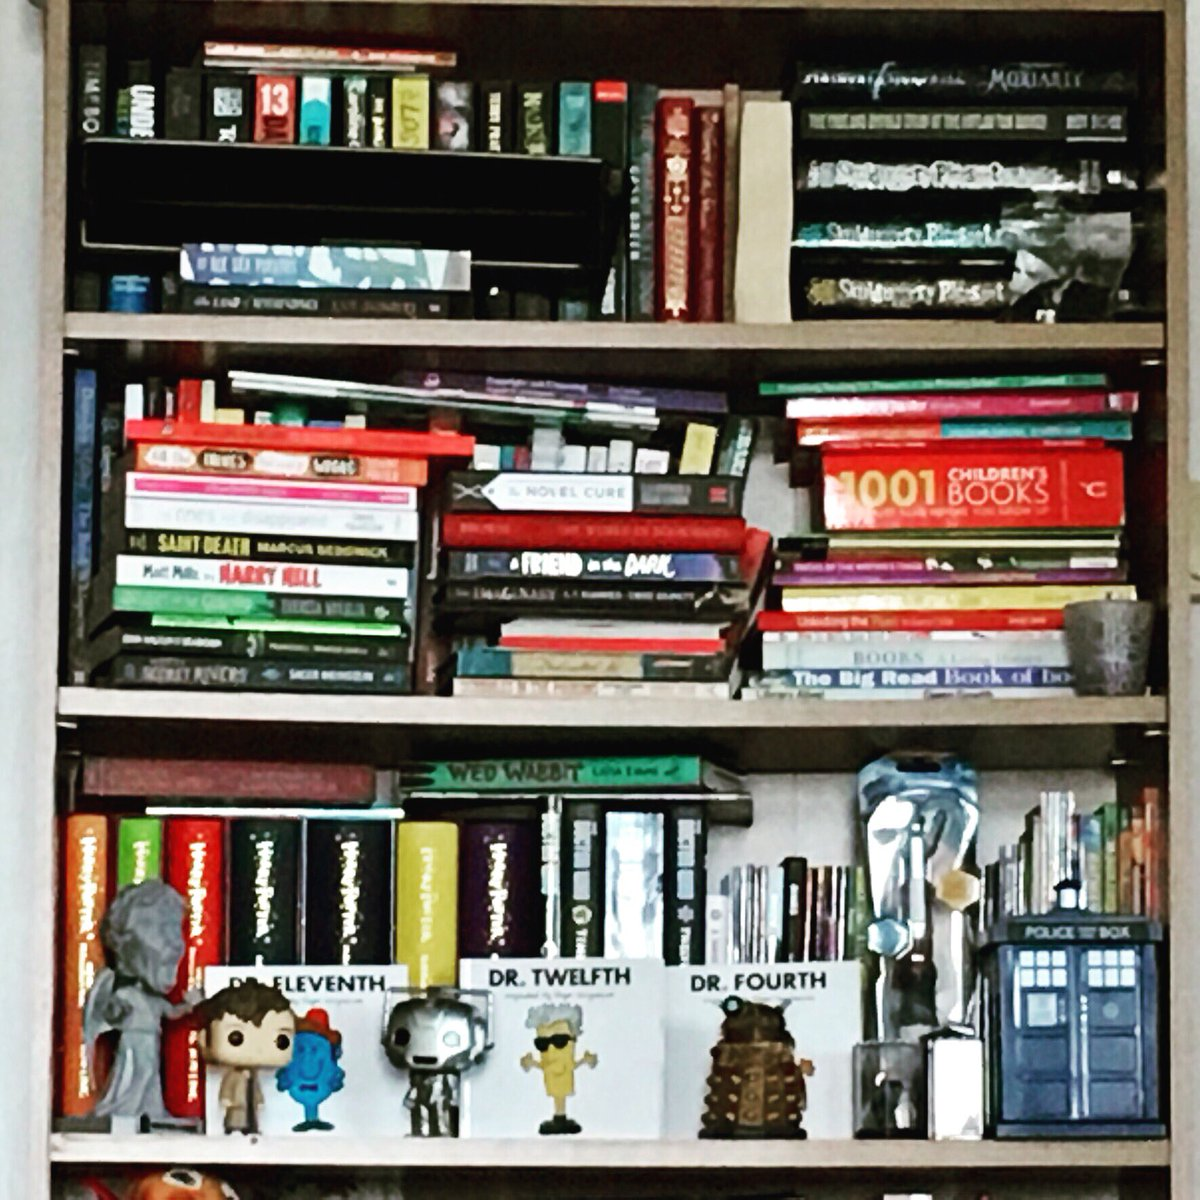 Part of summer will be spent rearranging home bookshelves but will have to read and give away some first  #iamalibrarian #shelfie<br>http://pic.twitter.com/Yp3tgDtrKA